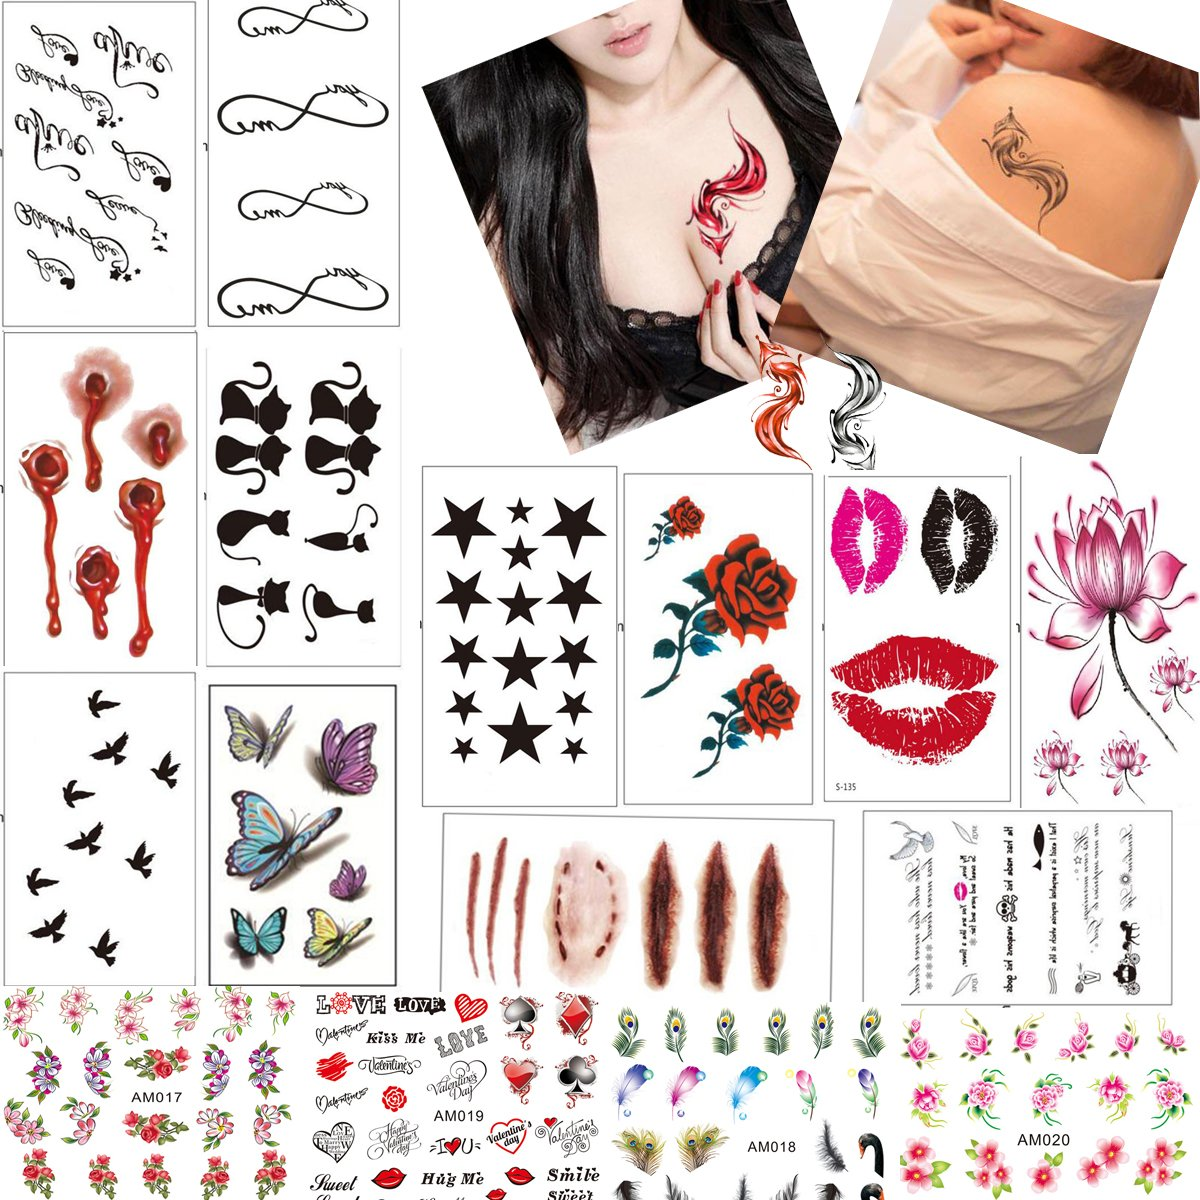 14PCS Waterproof Temporary Tattoos Body Art Tattoo Sexy Rose Flower Butterfly Infinity Love Symbol Fox Cat Lip Star Bird Scar Feather for Women Teens Girls 4PC Nail Art Stickers (LOHSET005A)